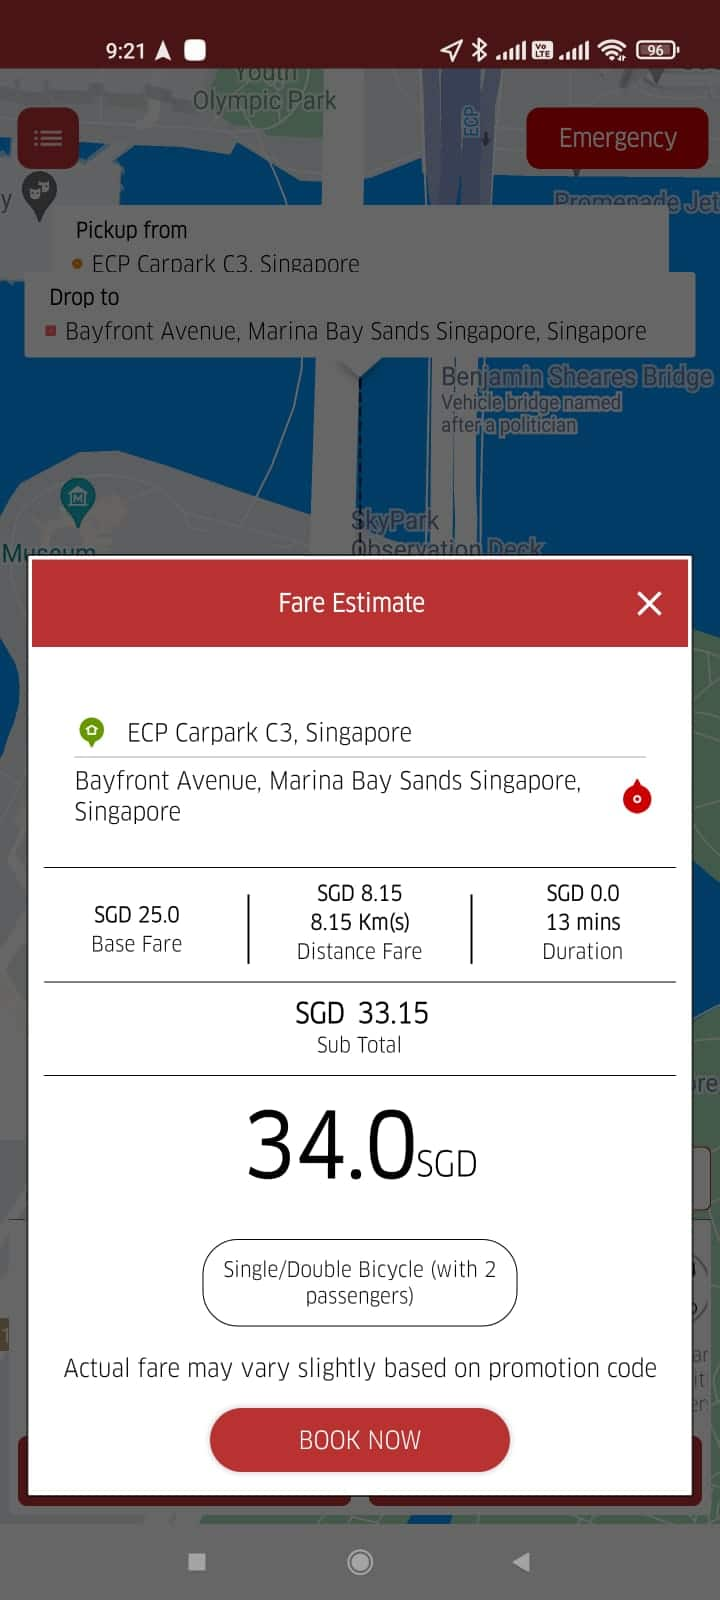 vimo services mobile app bicycle transport fare from east coast park to marina bay sands $34